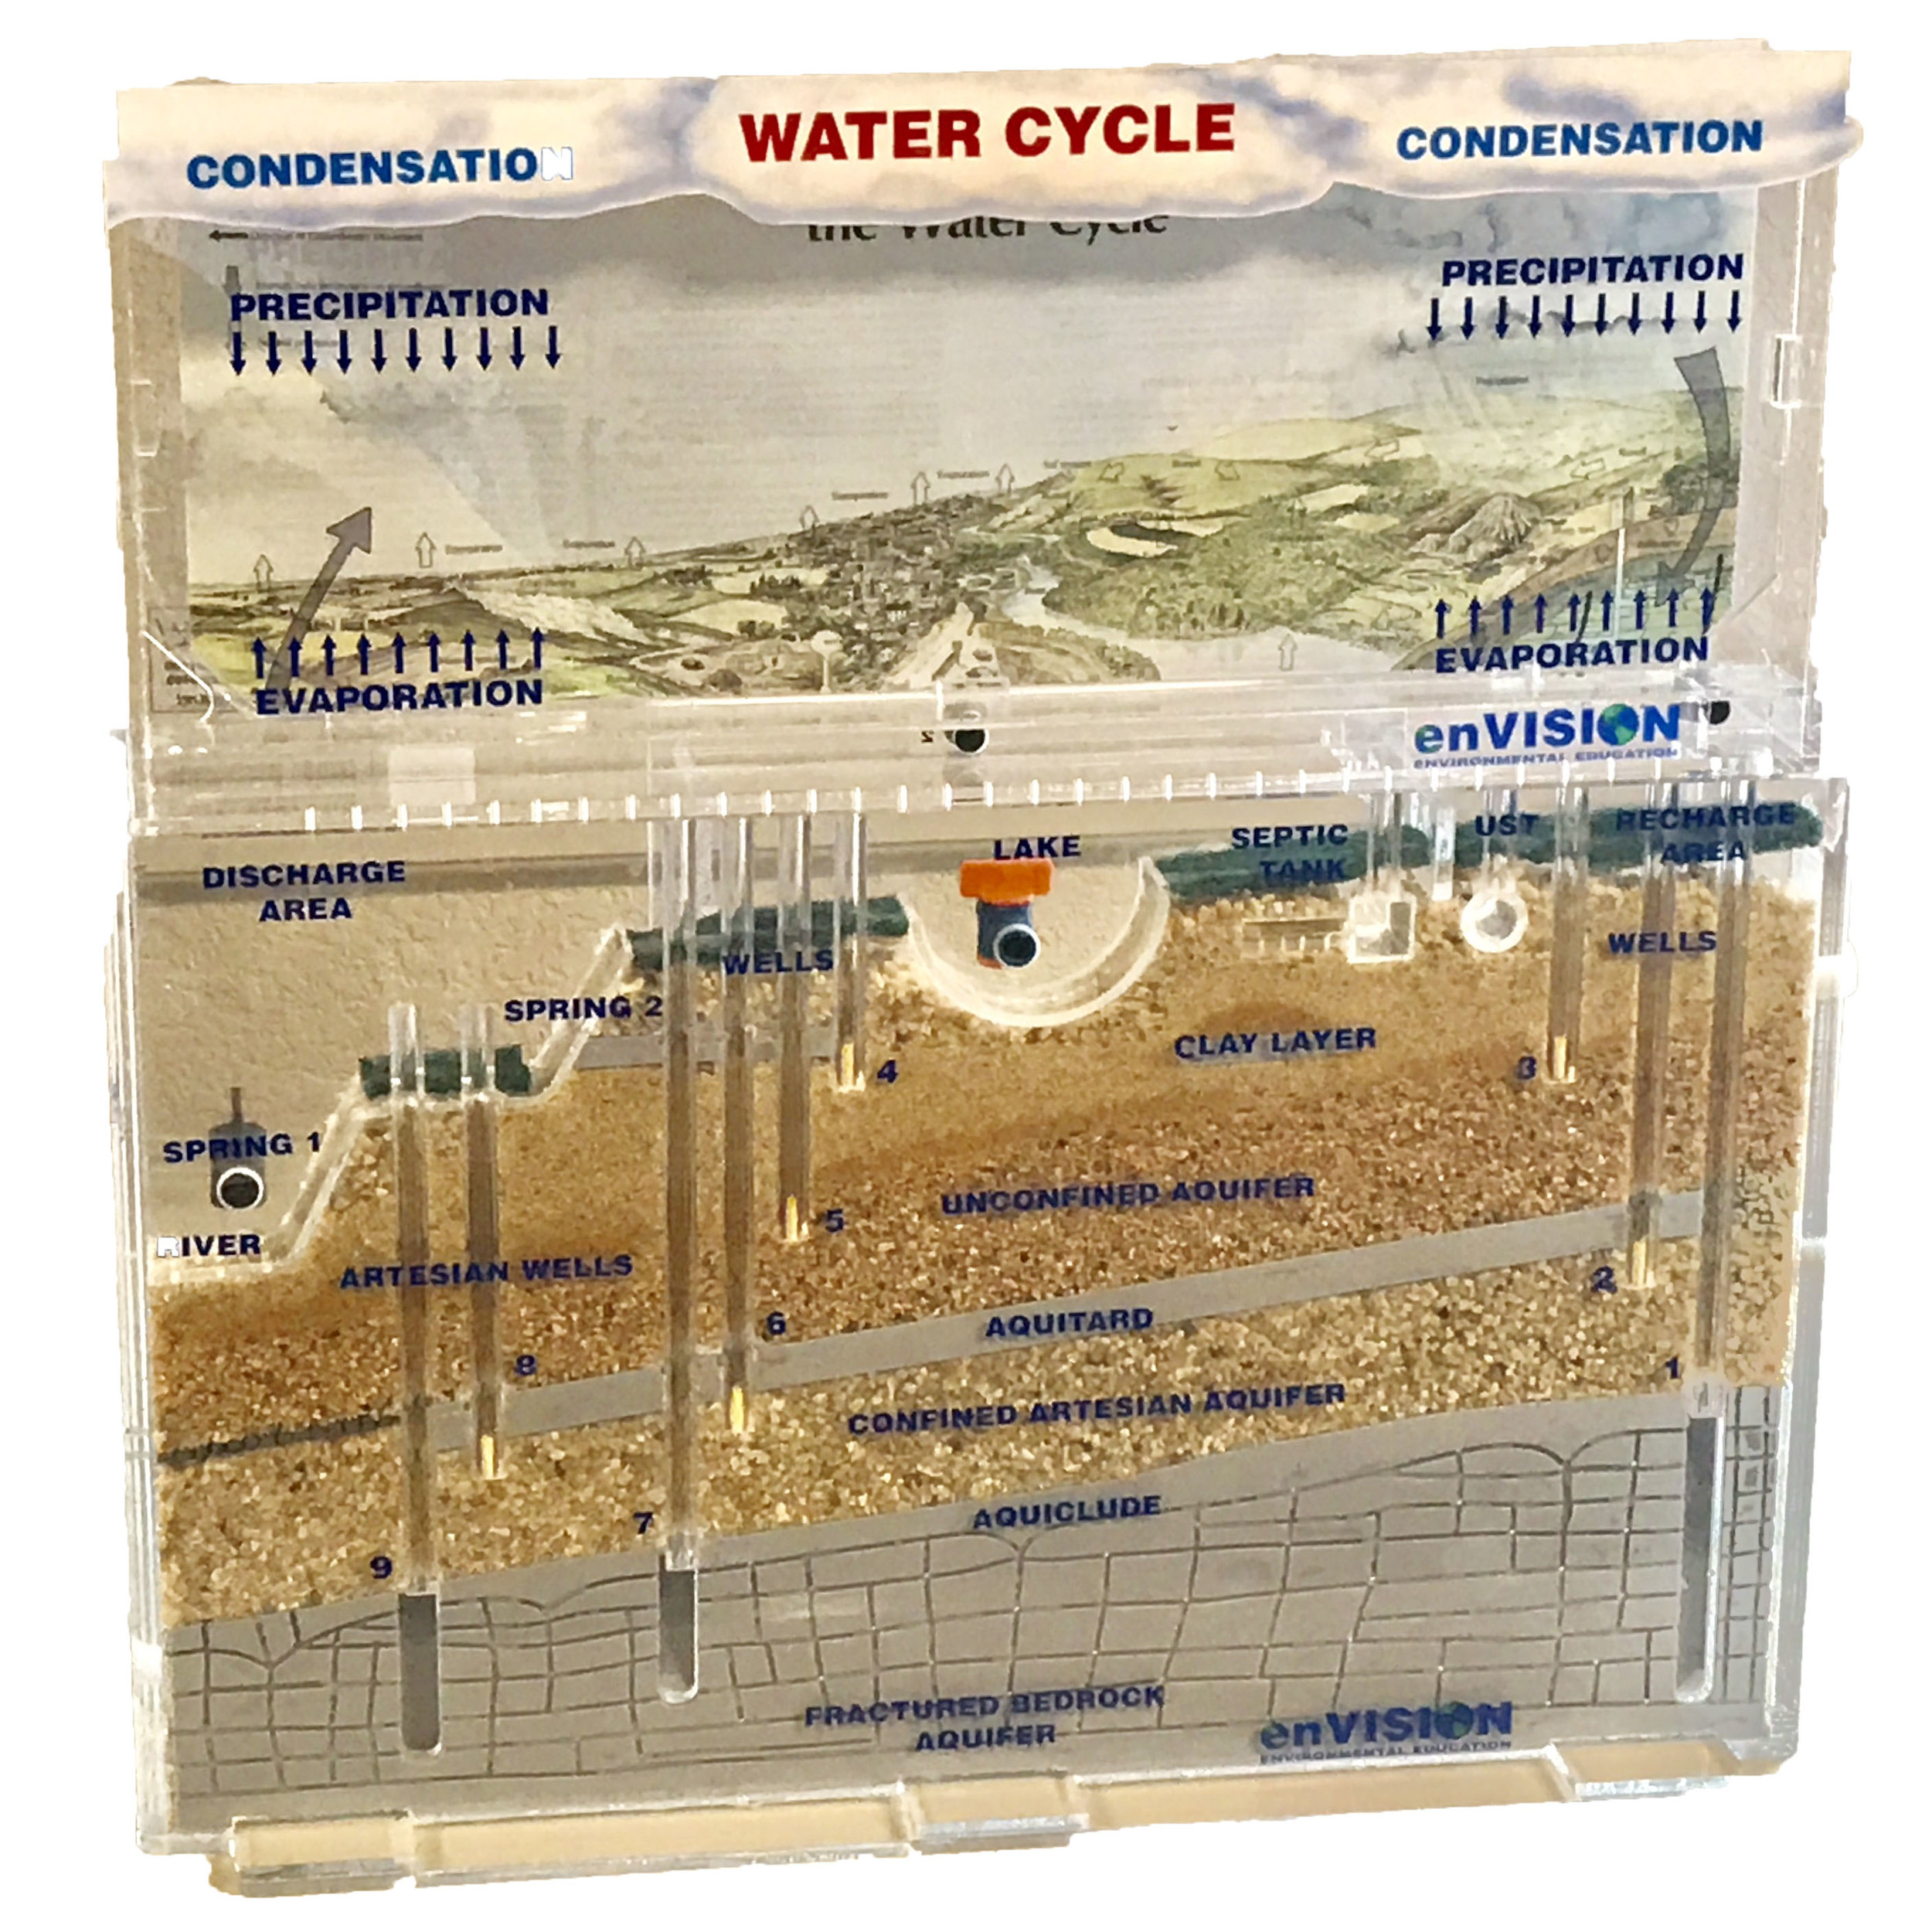 Aquifer Model - The model offers students a bird's eye view of how the water cycle and groundwater interact with each other from the clouds down to the aquifer. This aquifer model provides multiple opportunities for various discussions about porosity, permeability, run-off, pollution, and many more.Approximately 45 - 60 minutes.